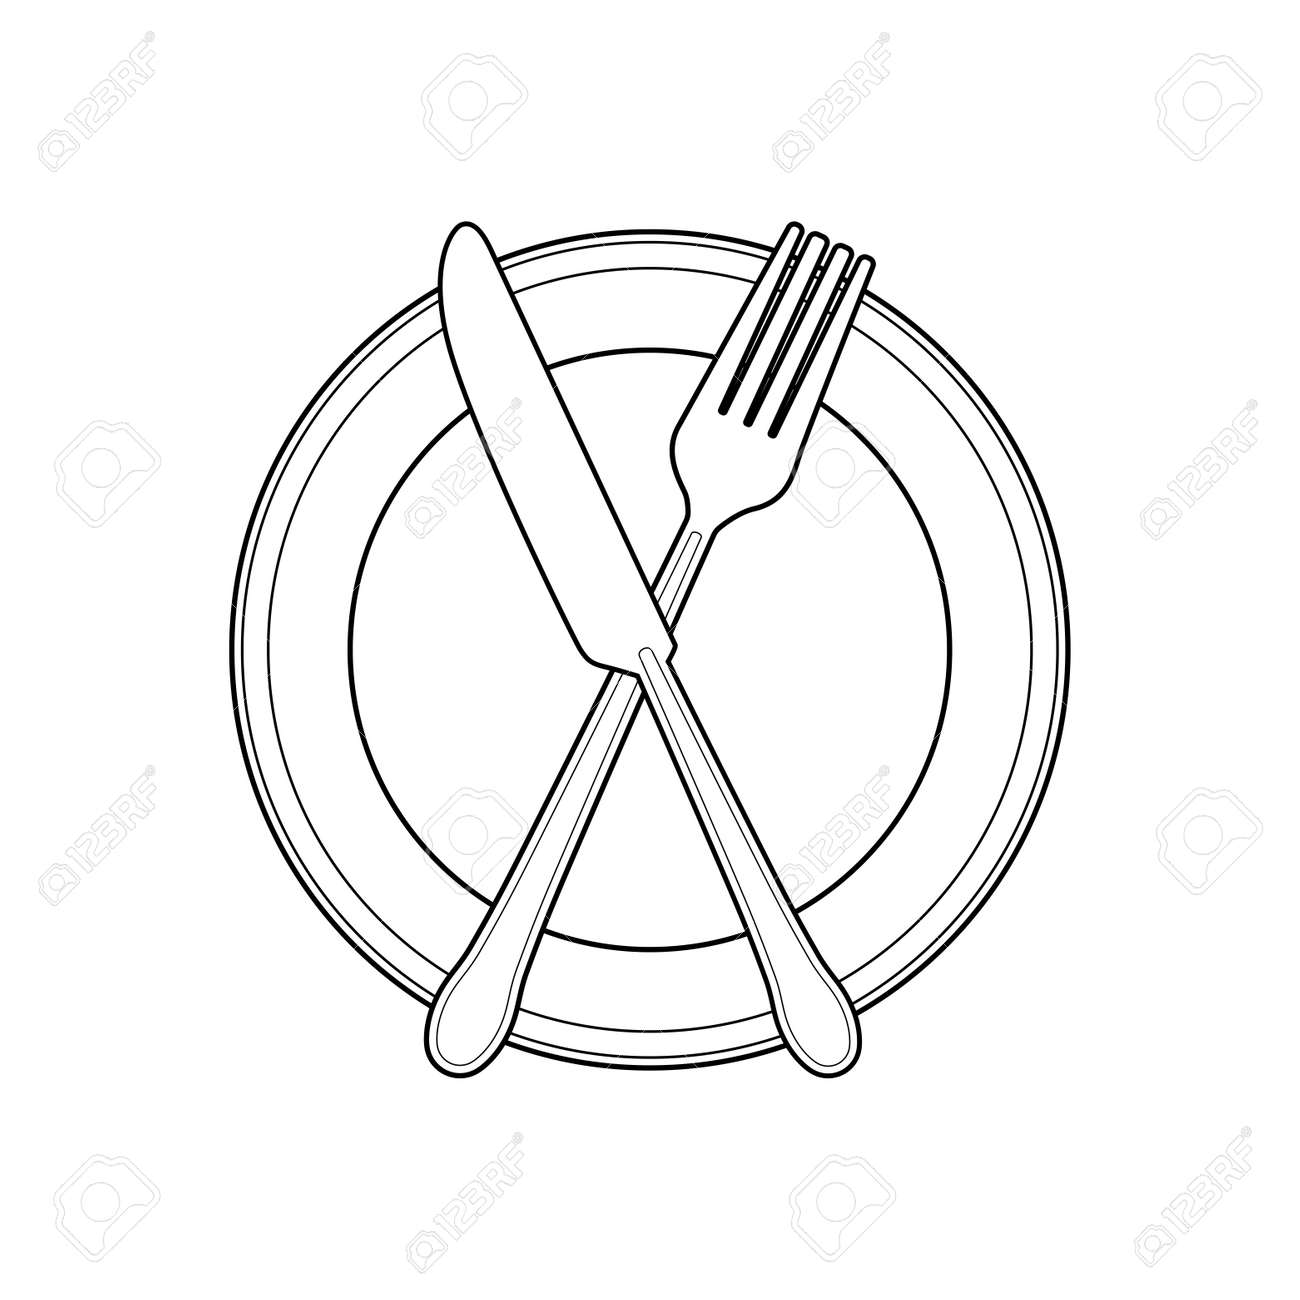 Empty Plate With Knife And Fork On A White Background Linear